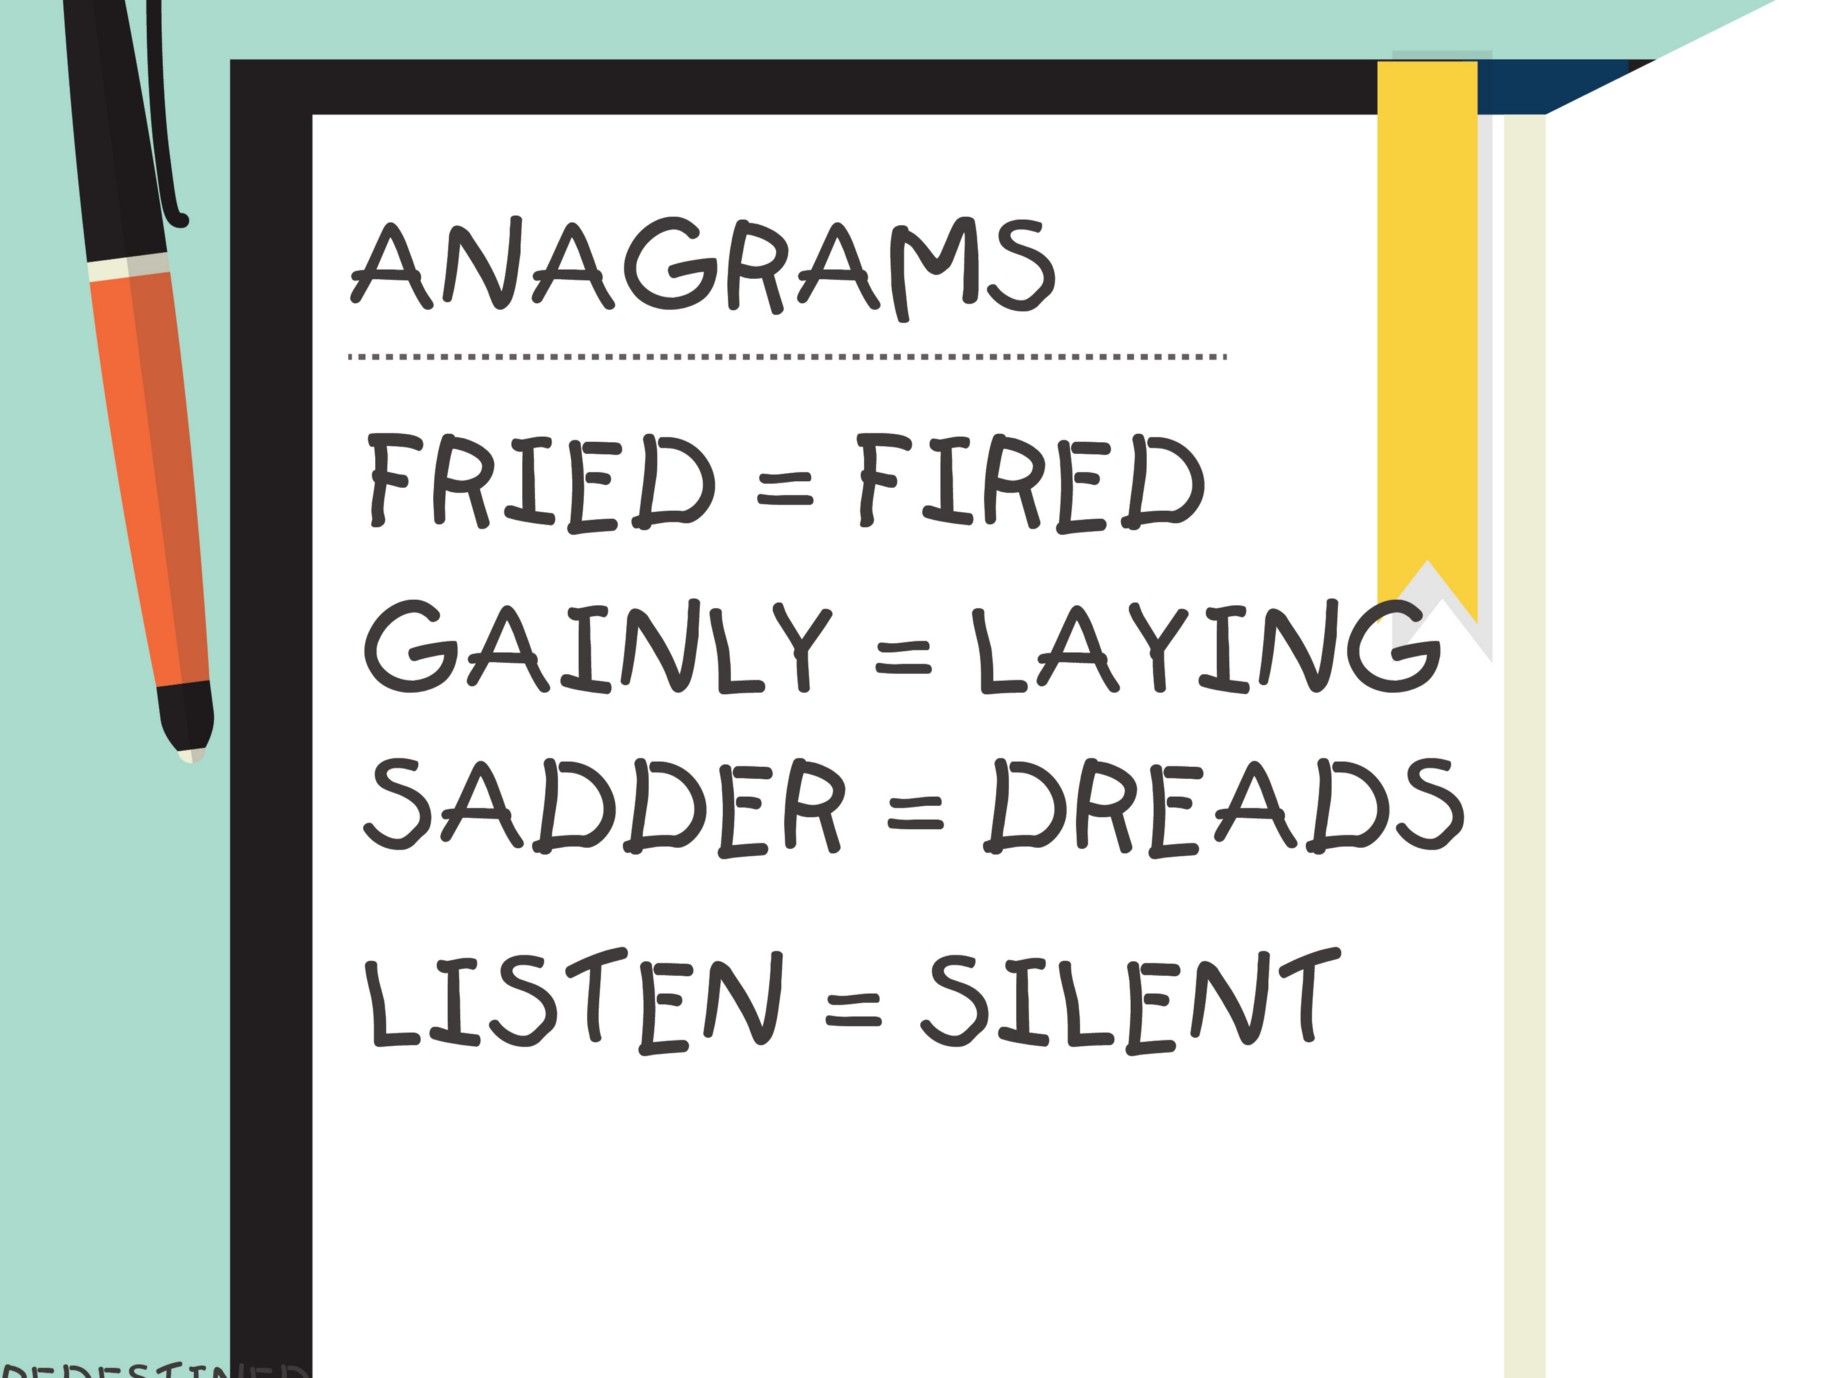 Making An Anagram in Frequency Based Approach - House of Codes - Medium